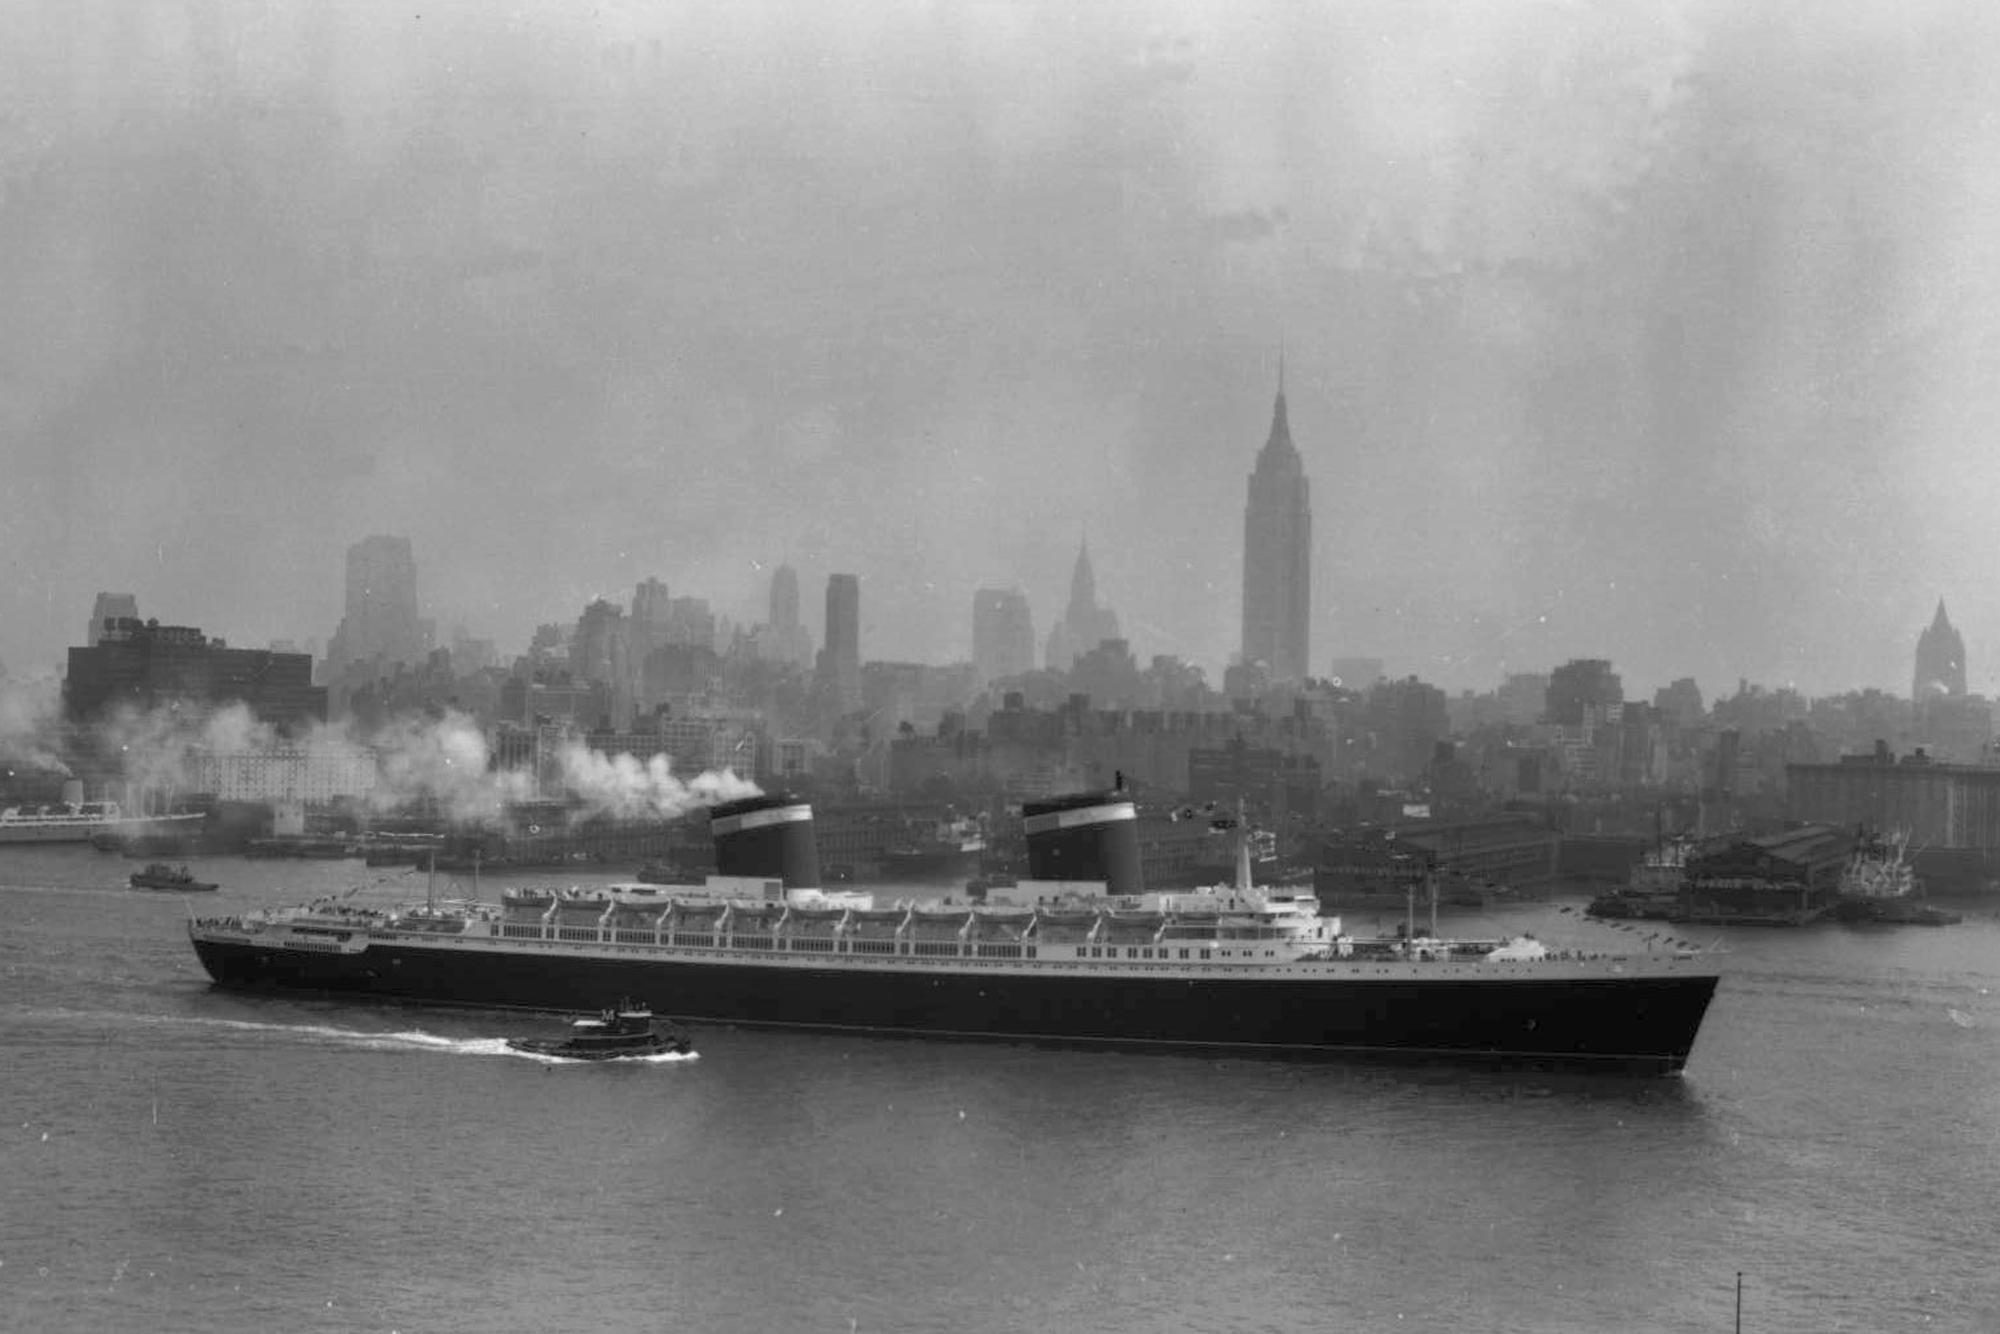 FILE - In this July 3, 1952 file photo, the SS United States glides down the Hudson River as it begins its first voyage to Europe from New York in view of the Midtown Manhattan skyline including the Empire State building on the center right. Money and time are running out for the historic ocean liner, which carried princes and presidents across the Atlantic in the 1950s and 1960s but has spent decades patiently awaiting a savior at its berth on the Philadelphia waterfront. The nonprofit conservancy working to secure a home and purpose for the 990-foot-long ship said it could be sold for scrap in the spring of 2013 unless they can raise $500,000 immediately. (AP photo/Jack Harris, File)